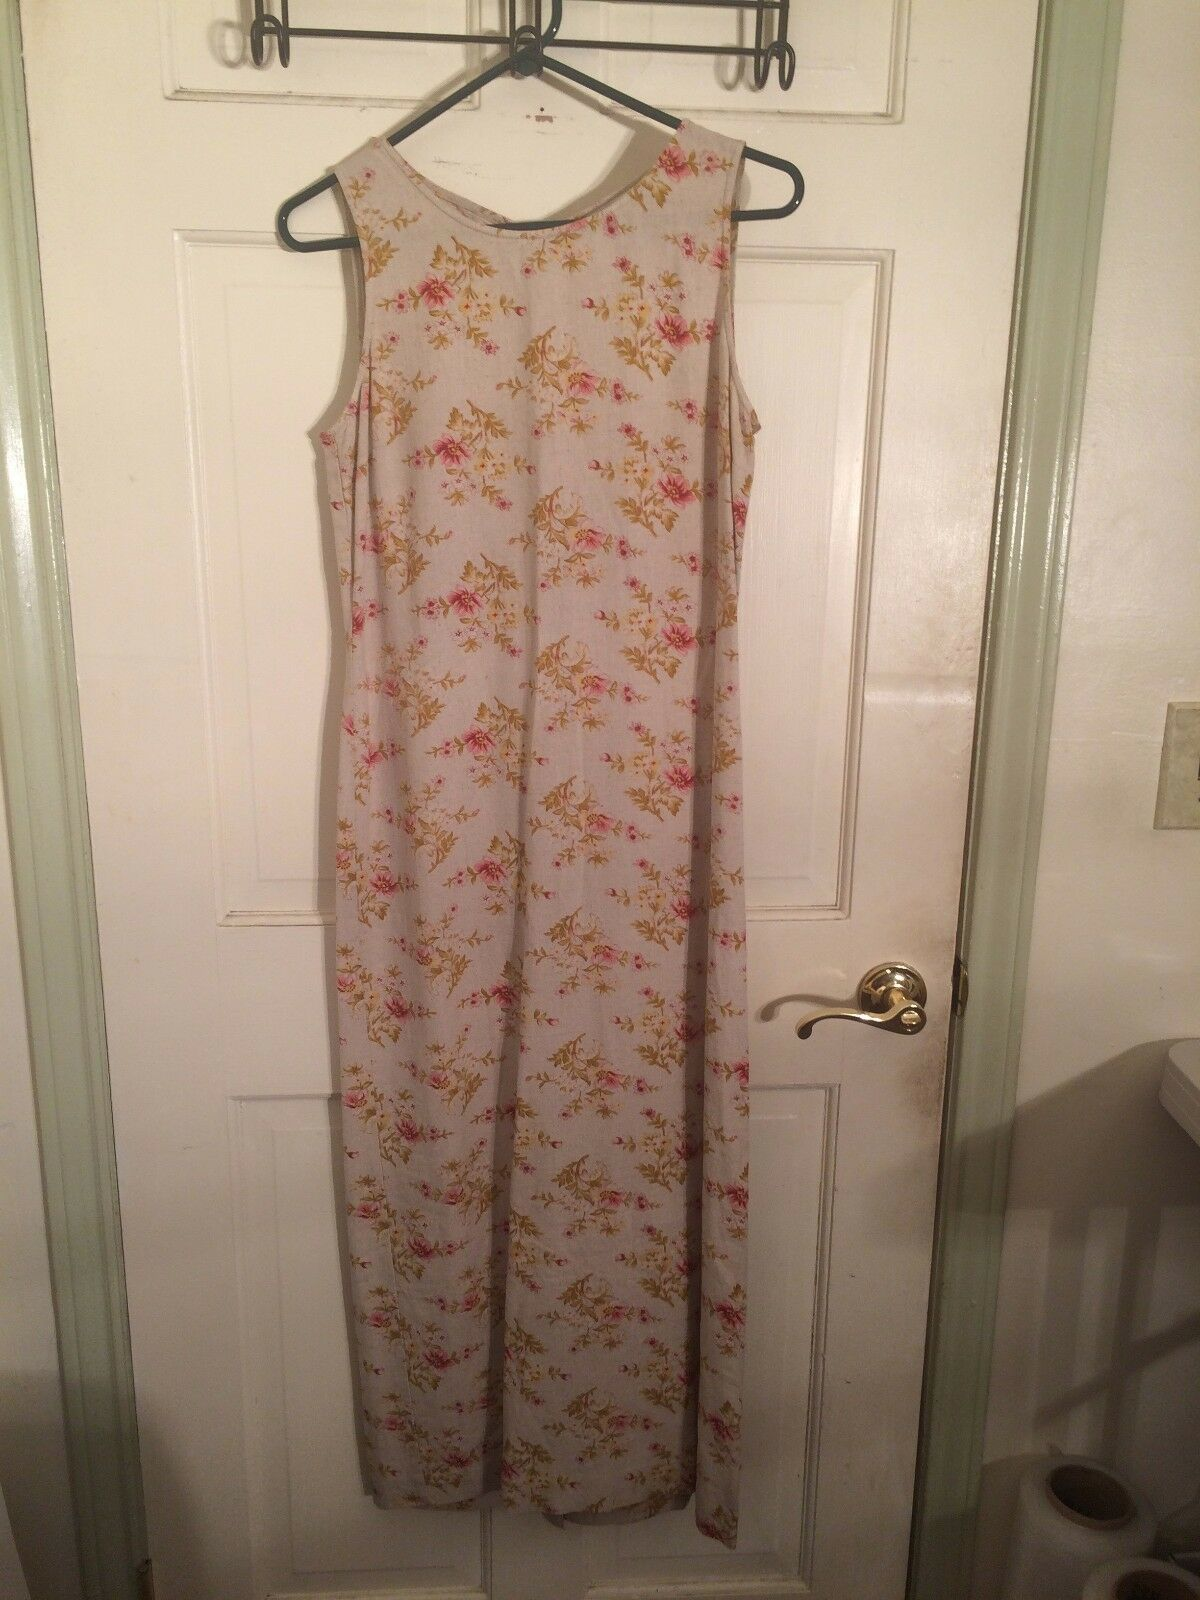 Women's Tan & Pink Floral Dress by Casual Corner Annex (01777)